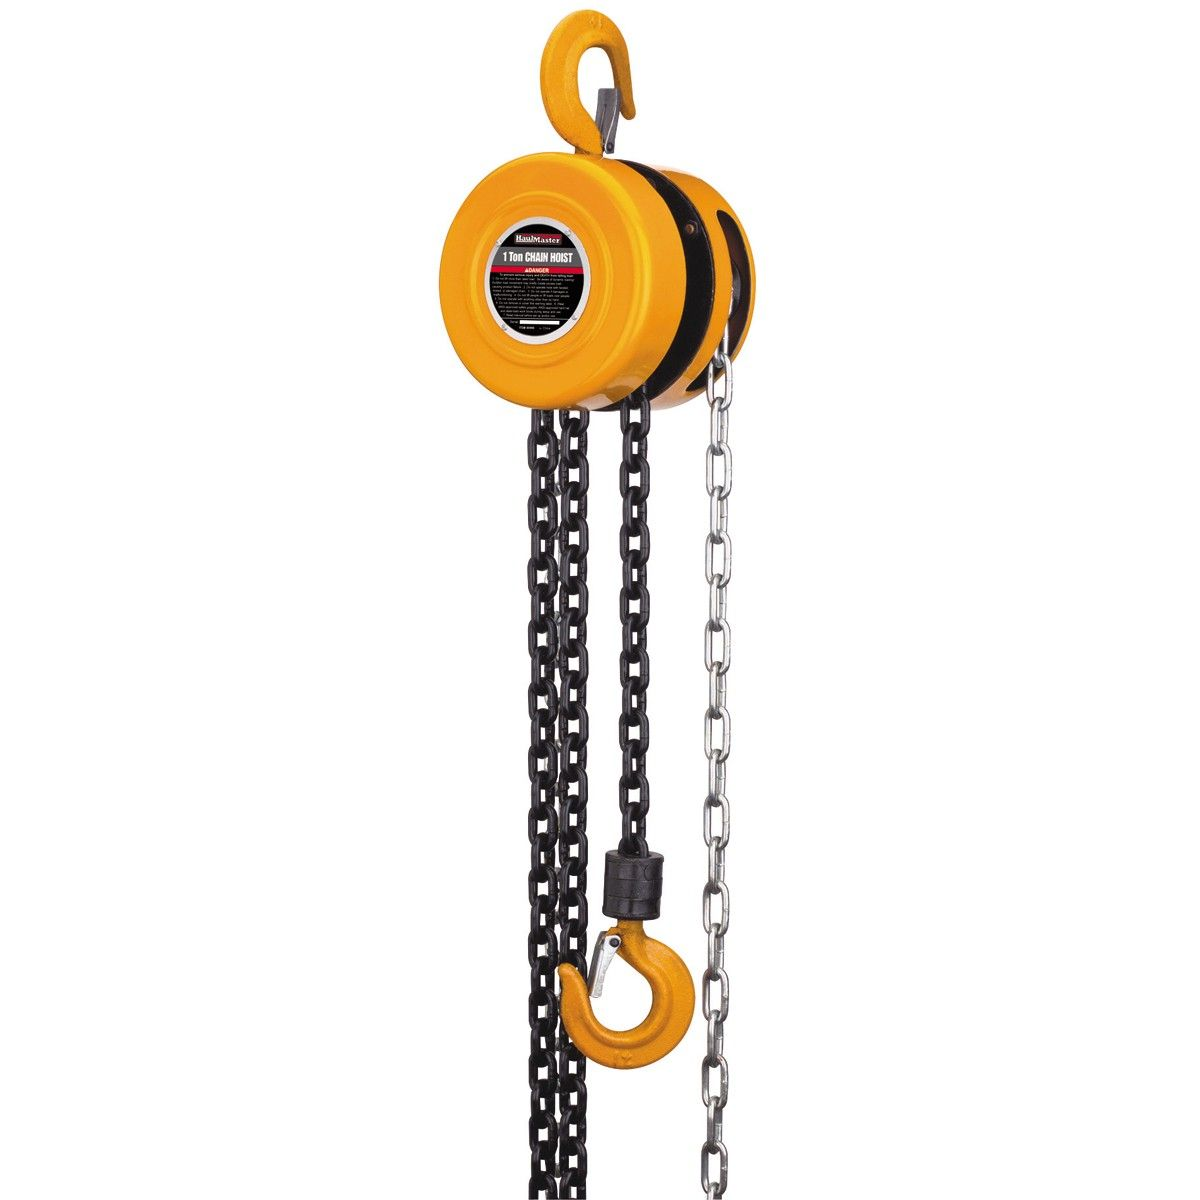 harbor freight hoist wiring diagram harbor image 1 ton manual chain hoist chains on harbor freight hoist wiring diagram